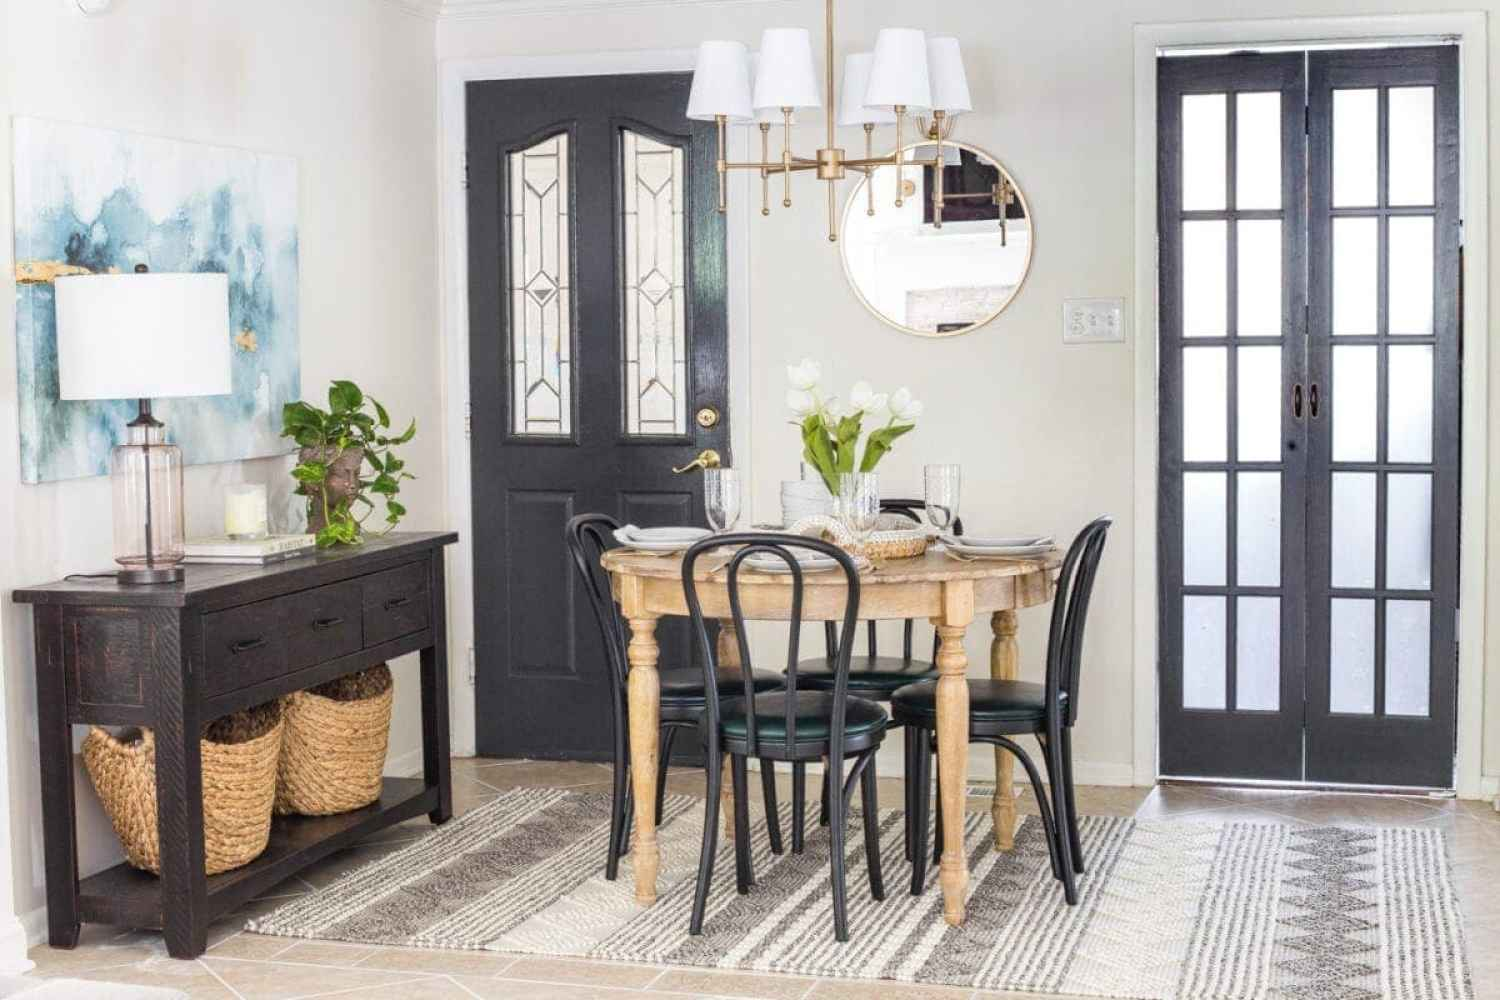 How a small, oddly laid out breakfast nook entryway got a makeover to maximize on storage, function, traffic flow, and modern style.